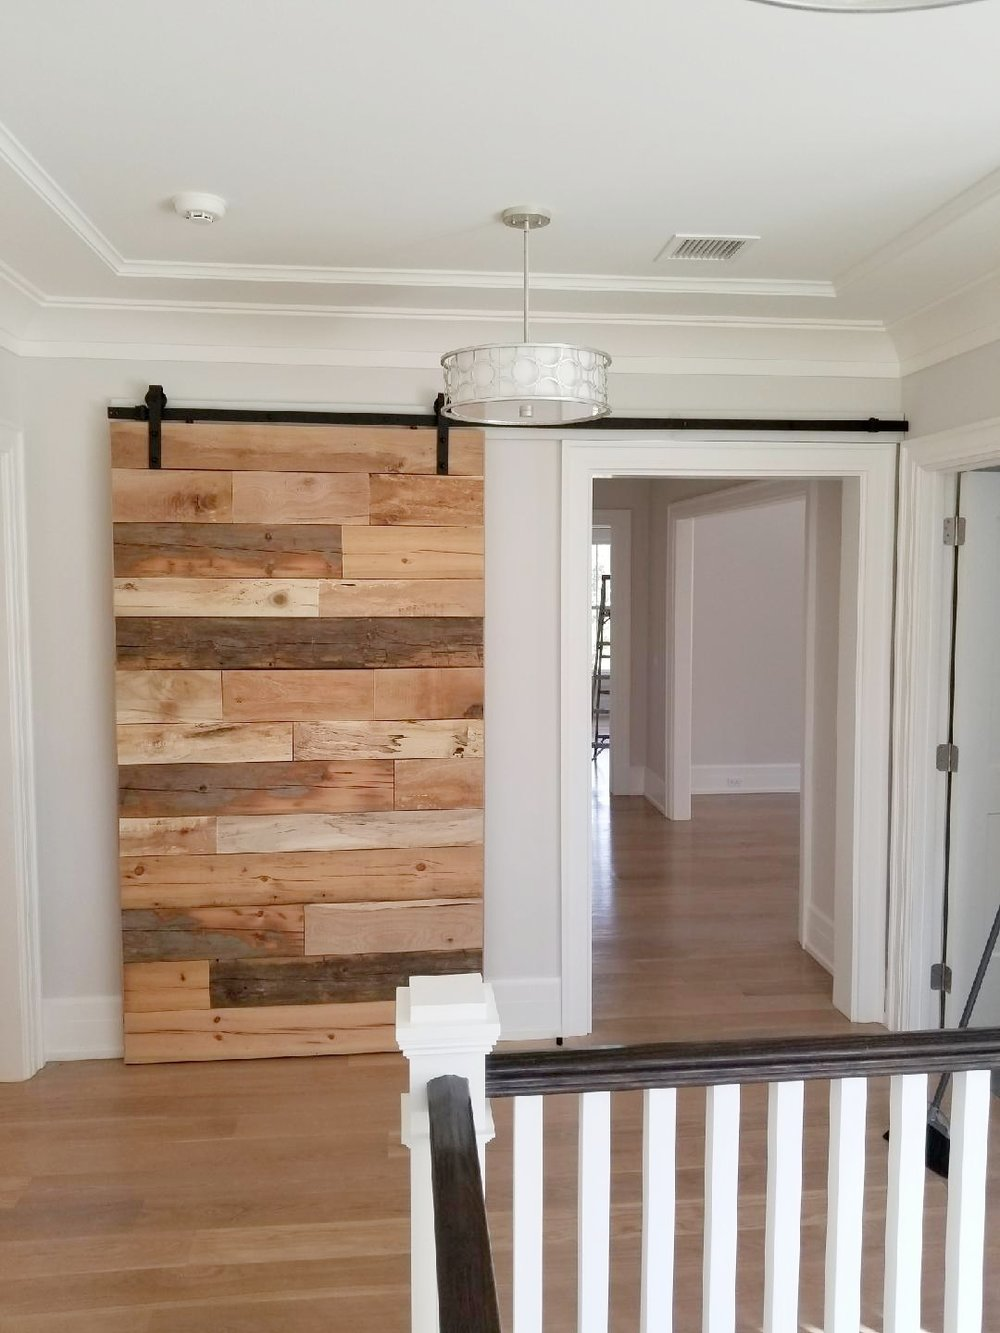 Barn door finished open.jpg